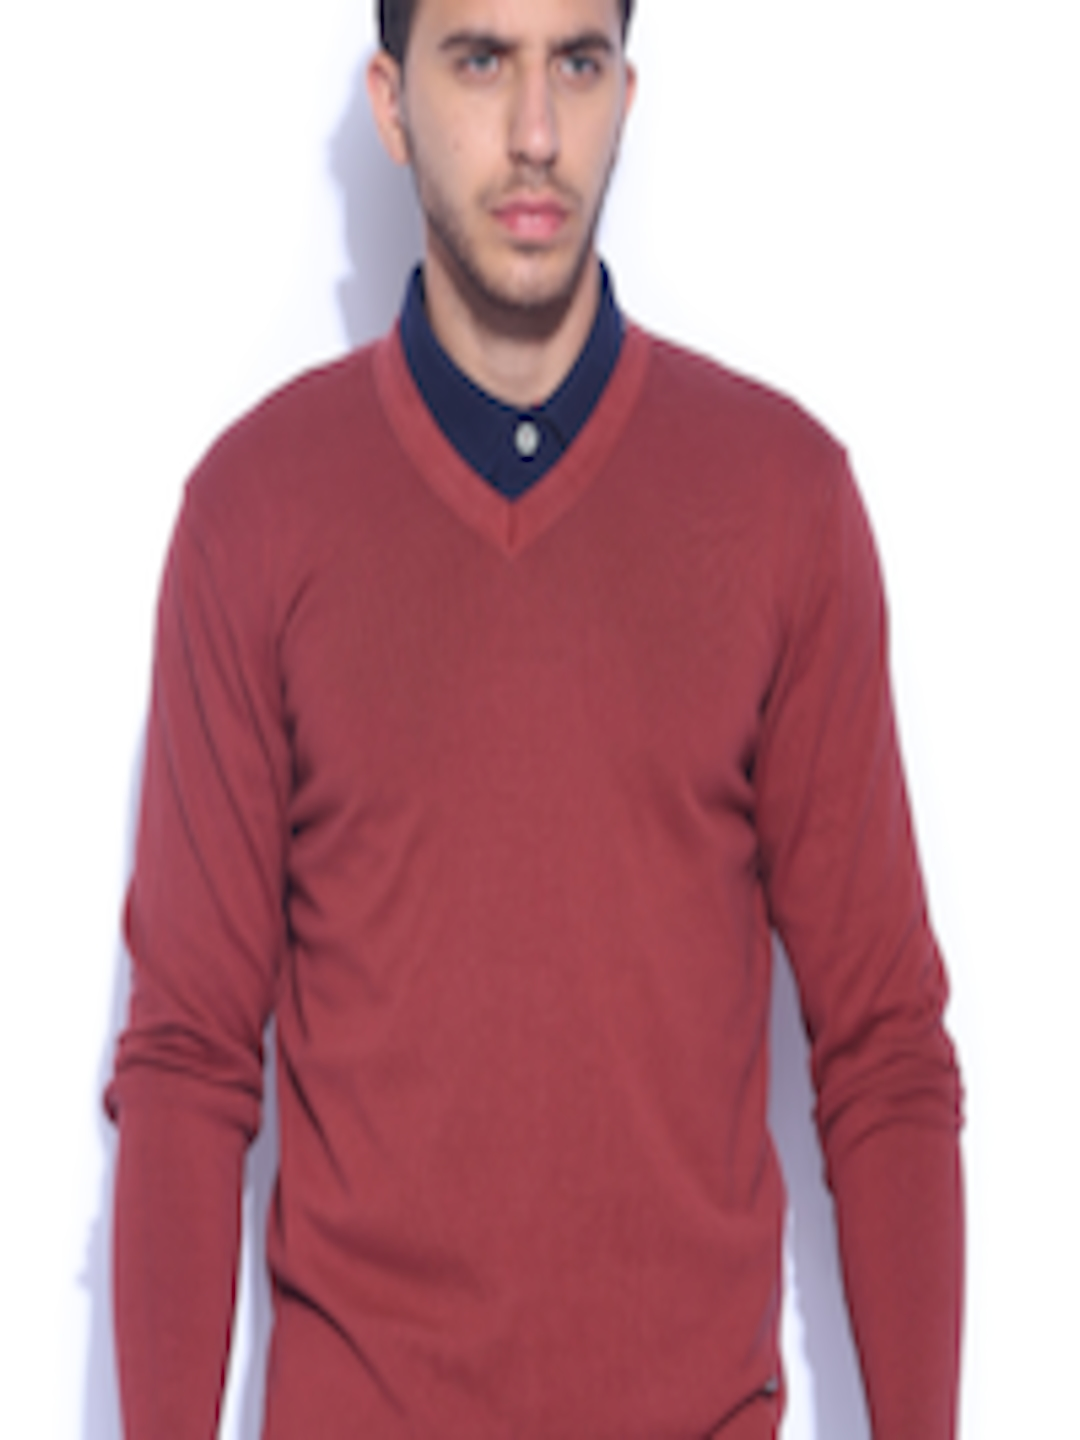 Buy Arrow New York Brick Red Sweater - Sweaters for Men | Myntra